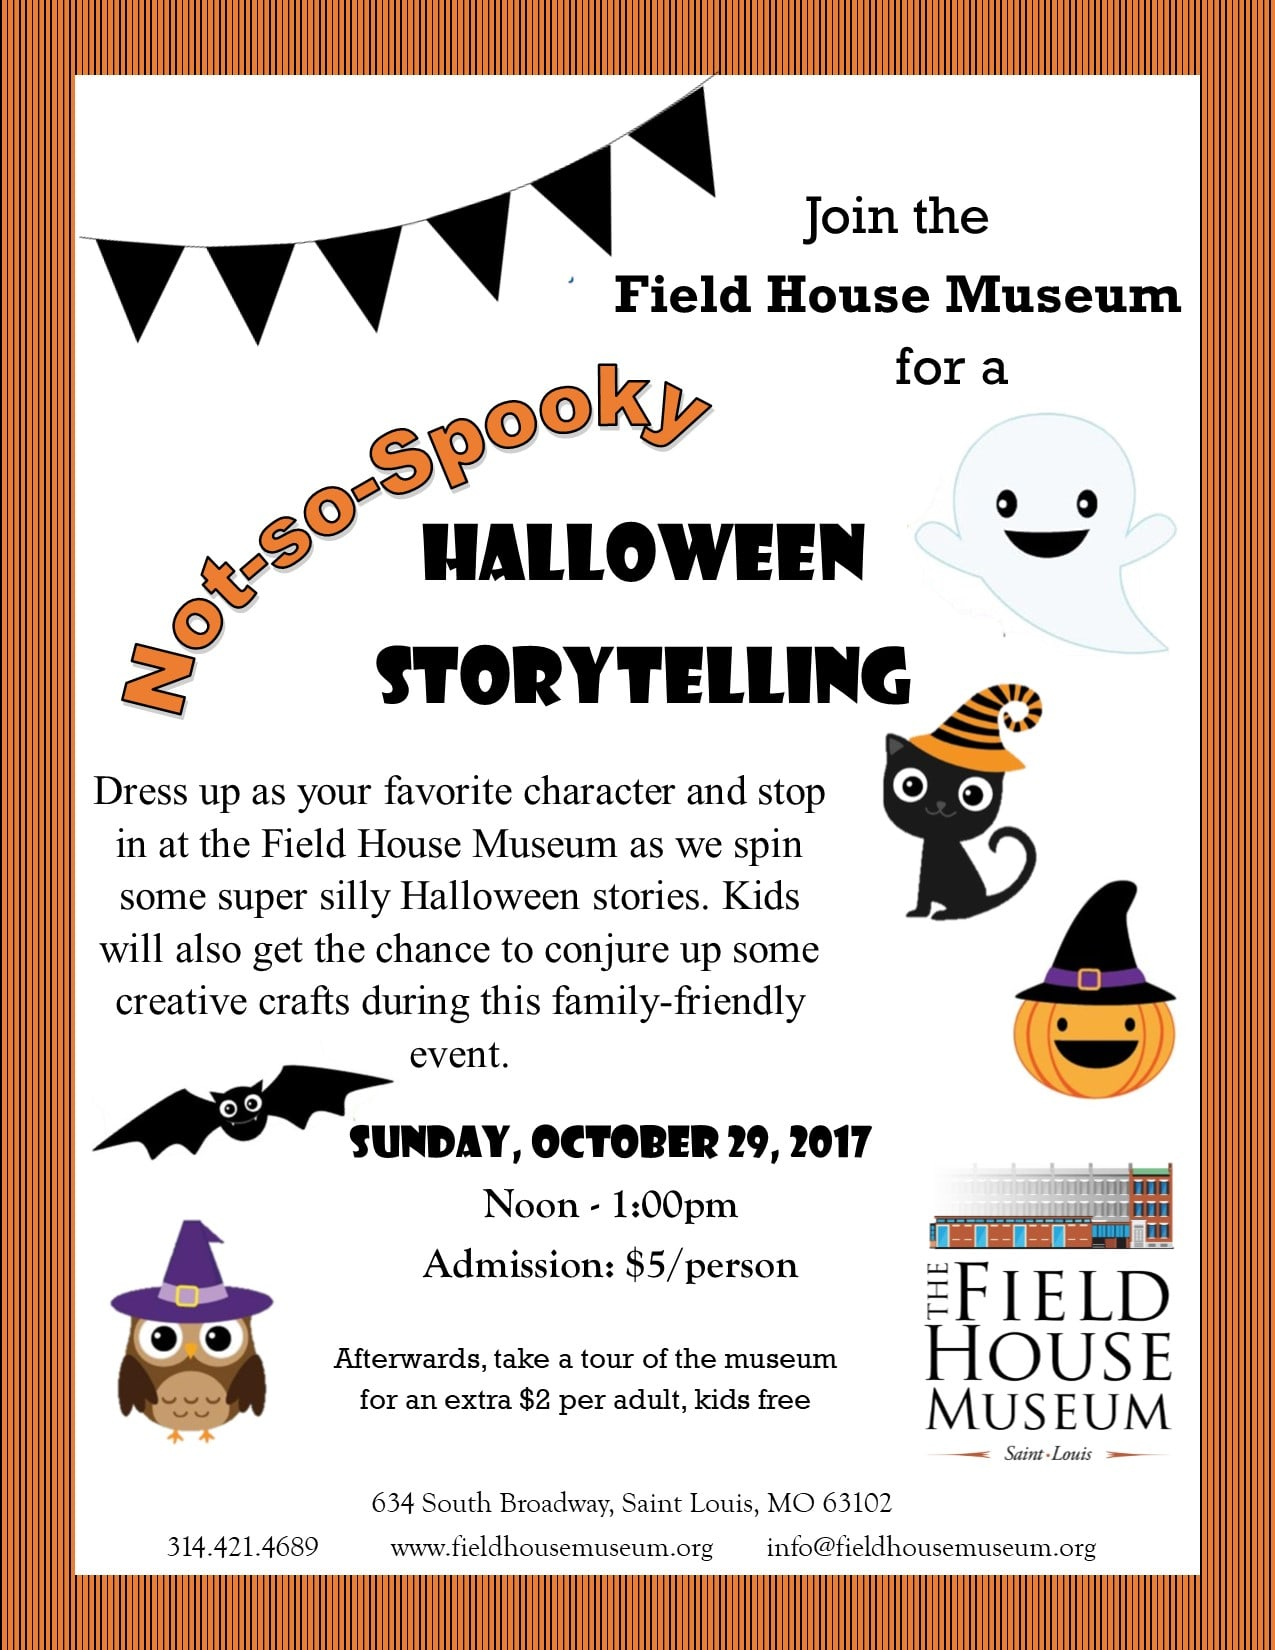 Not So Spooky Halloween Storytelling